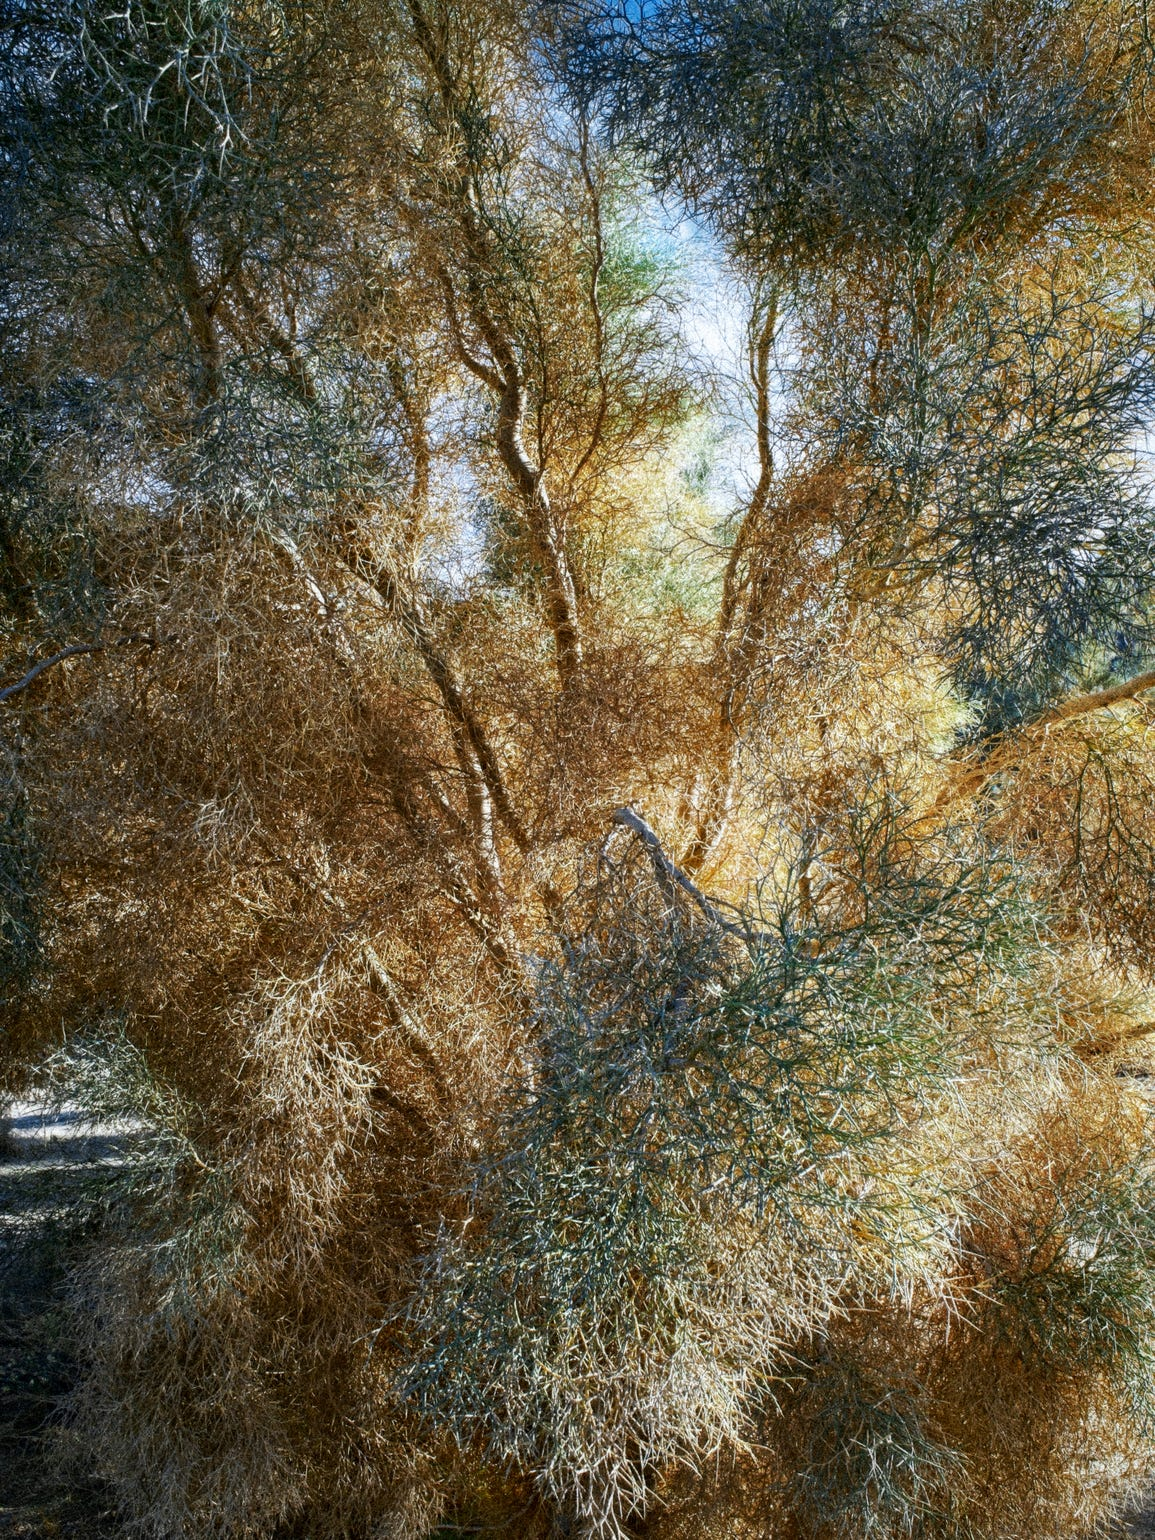 The appearance of the smoke tree in winter and other